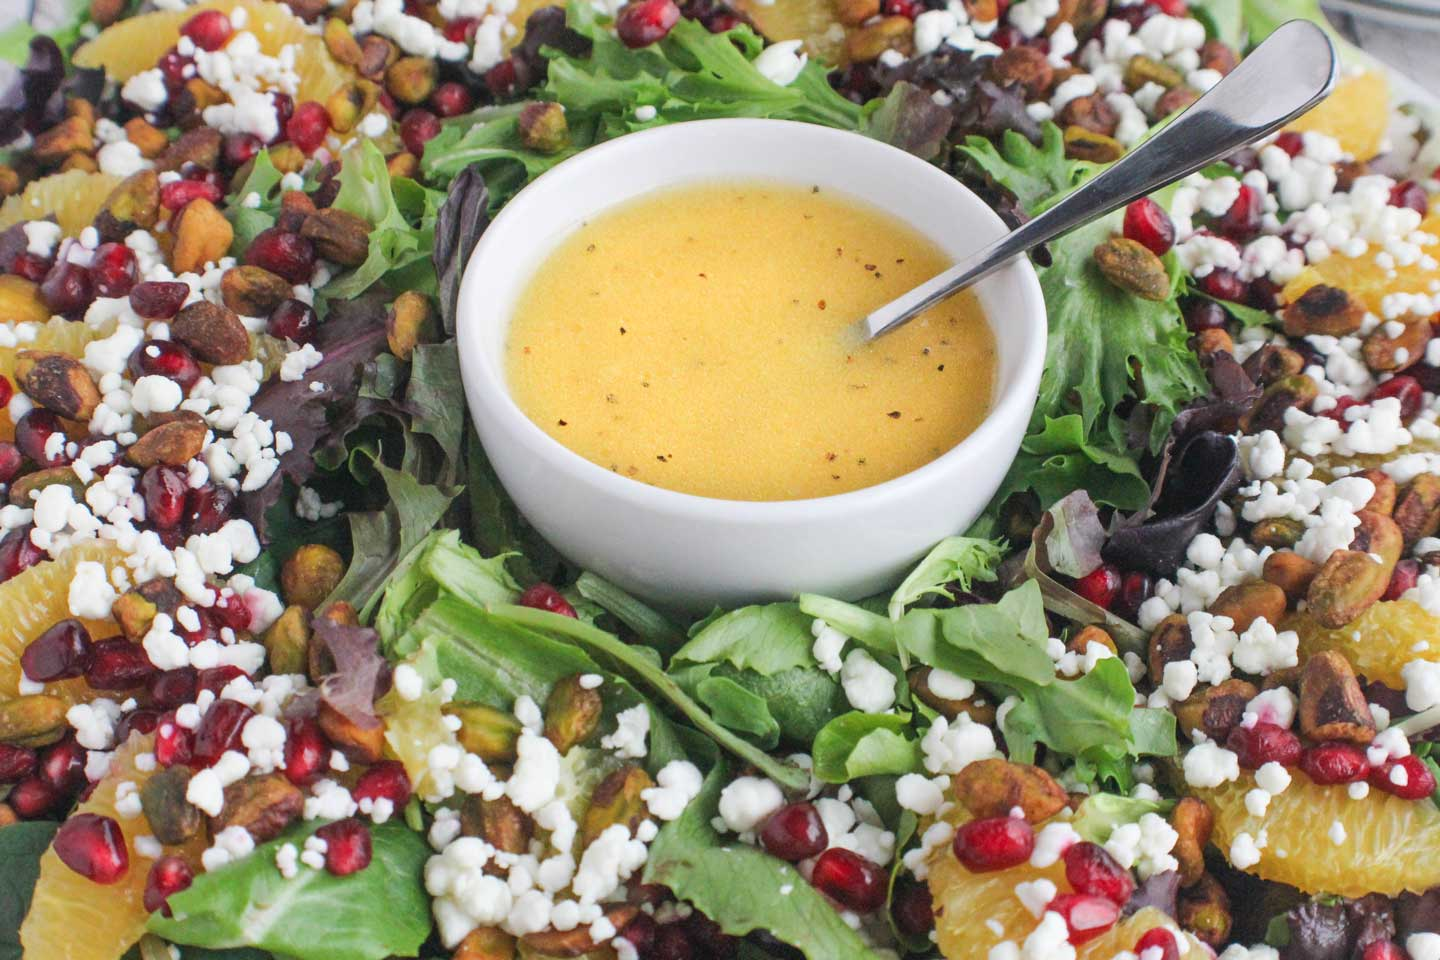 The easy Citrus-Champagne Vinaigrette is the perfect festive accompaniment to our holiday salad recipe!